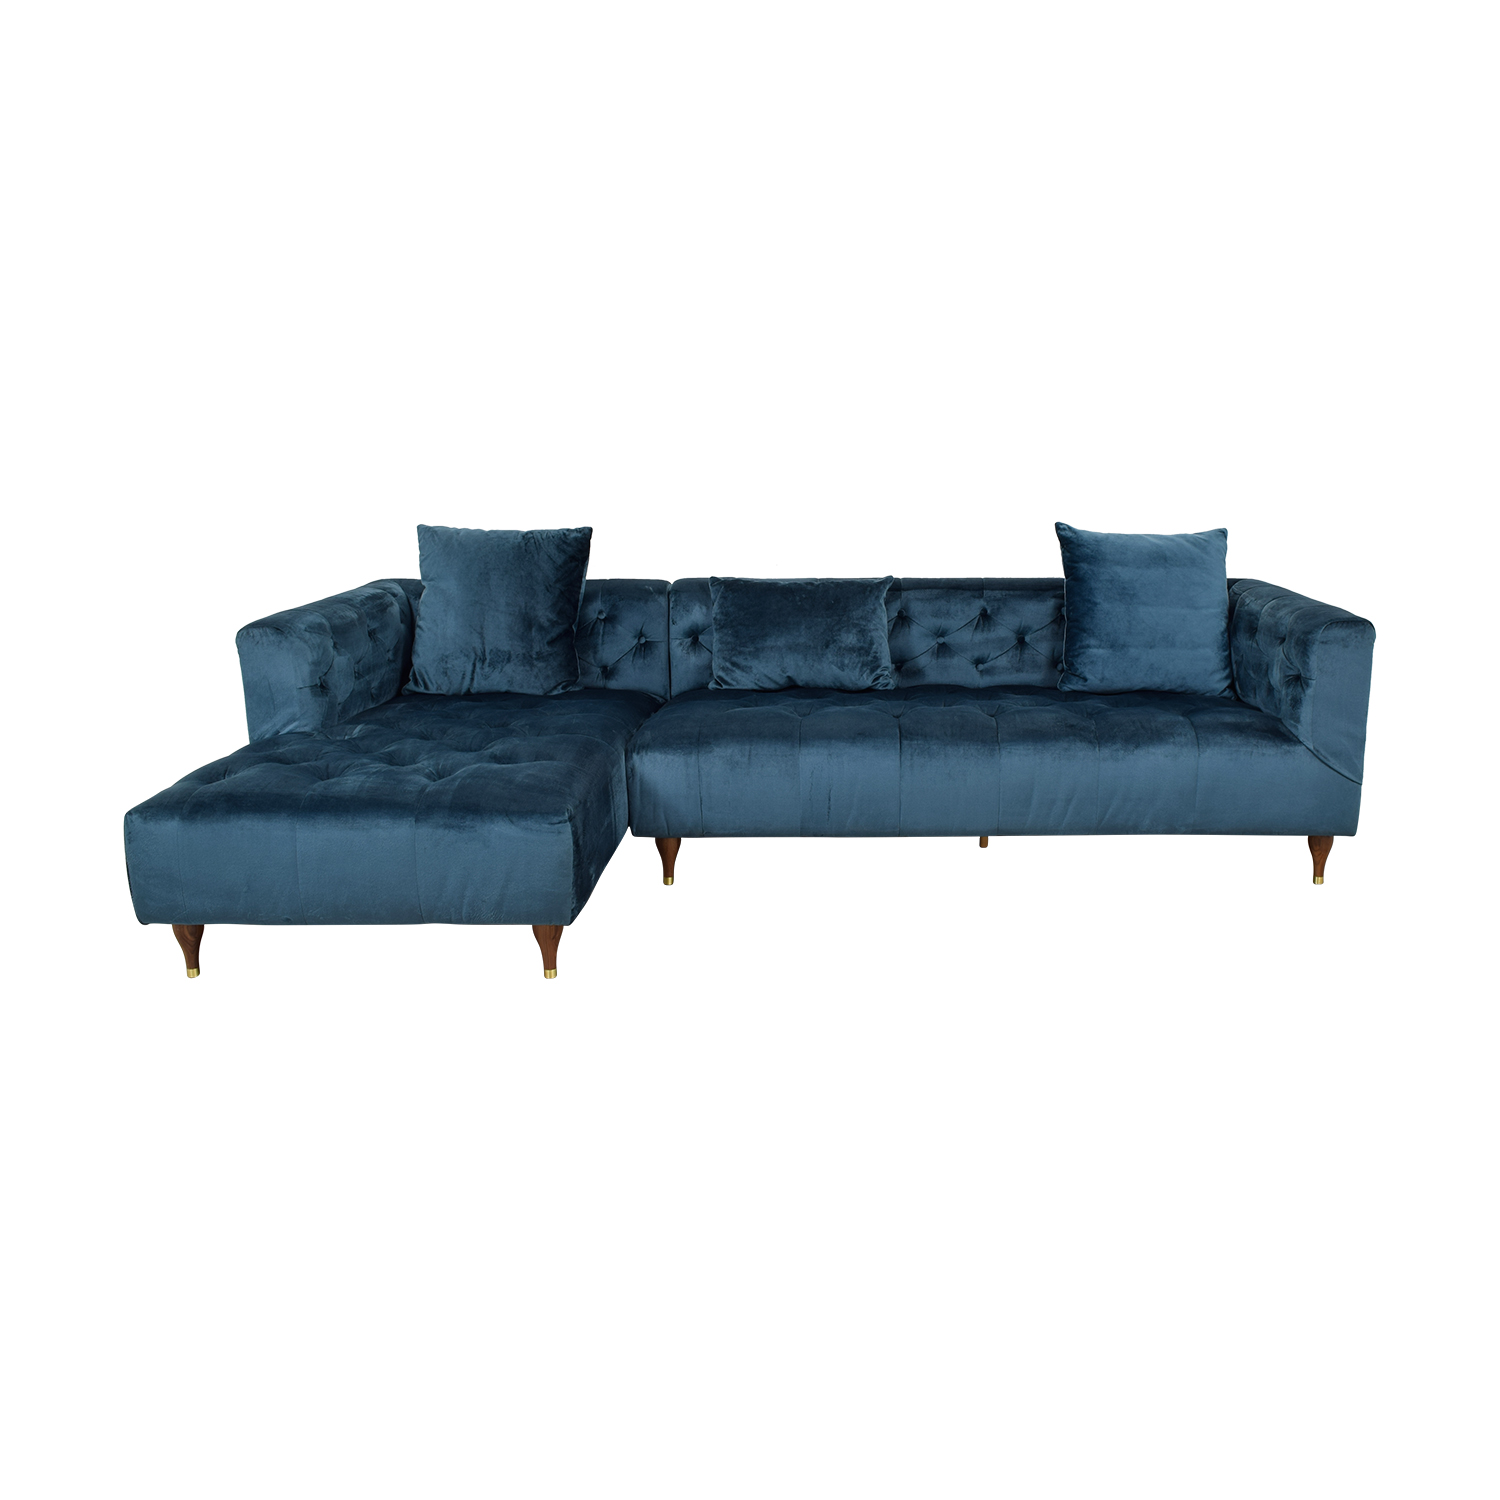 Ms. Chesterfiel Velvet Sapphire Blue Tufted Left Chaise Sectional second hand